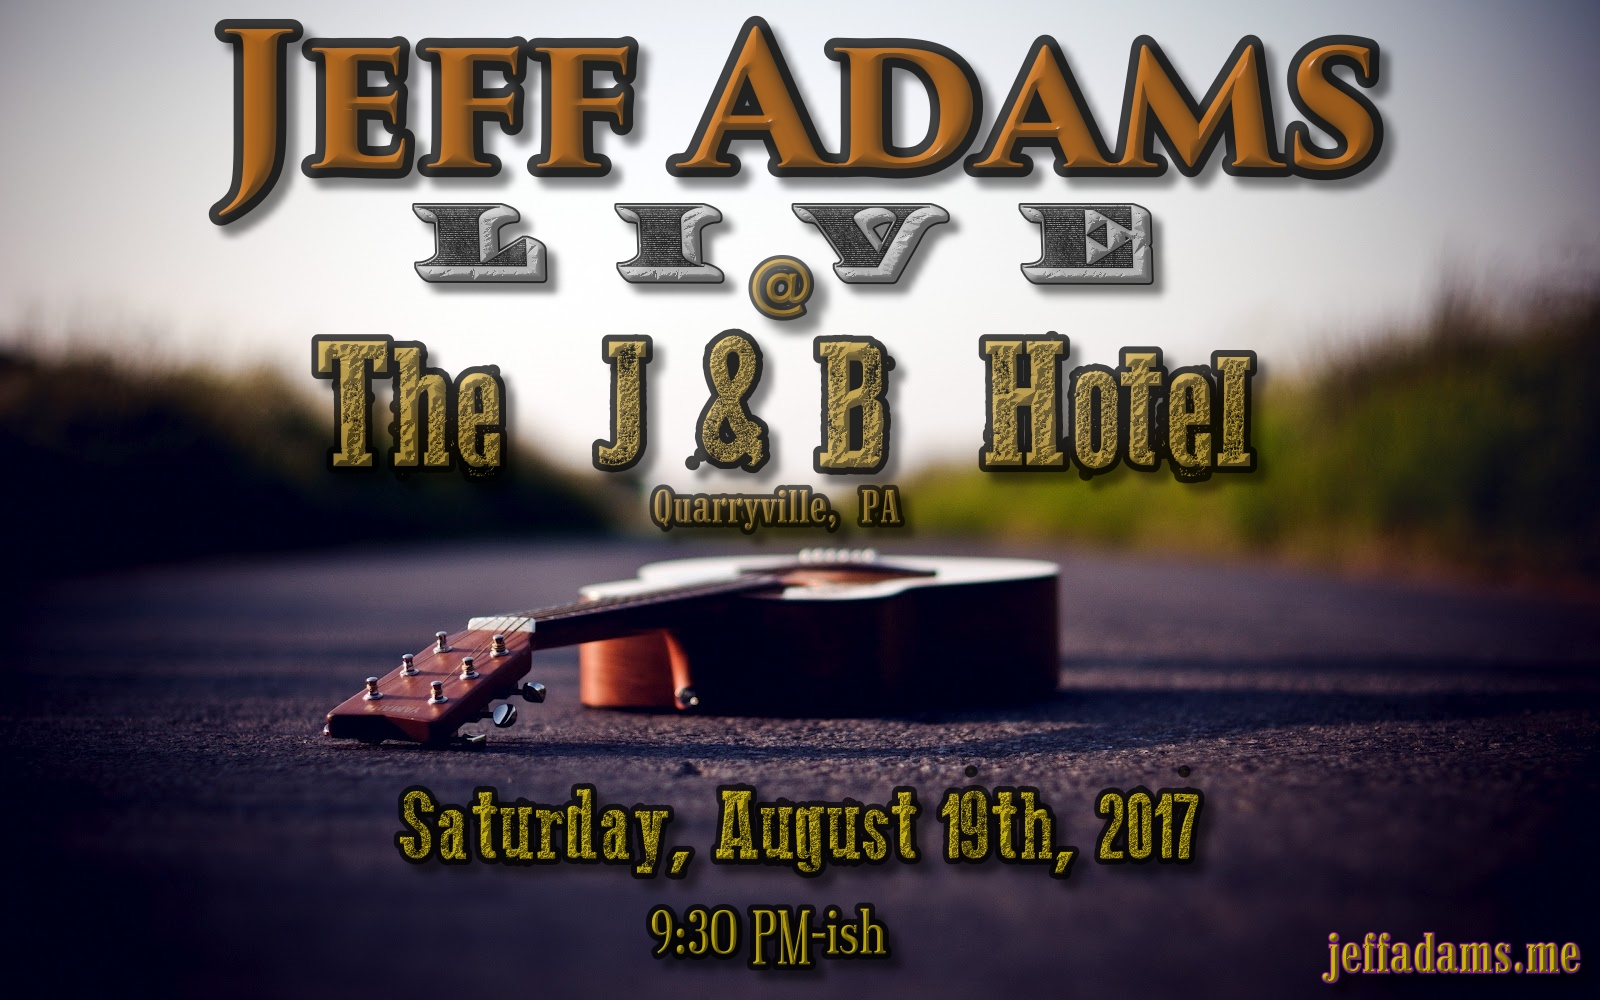 Jeff Adams @ The J & B 5/6